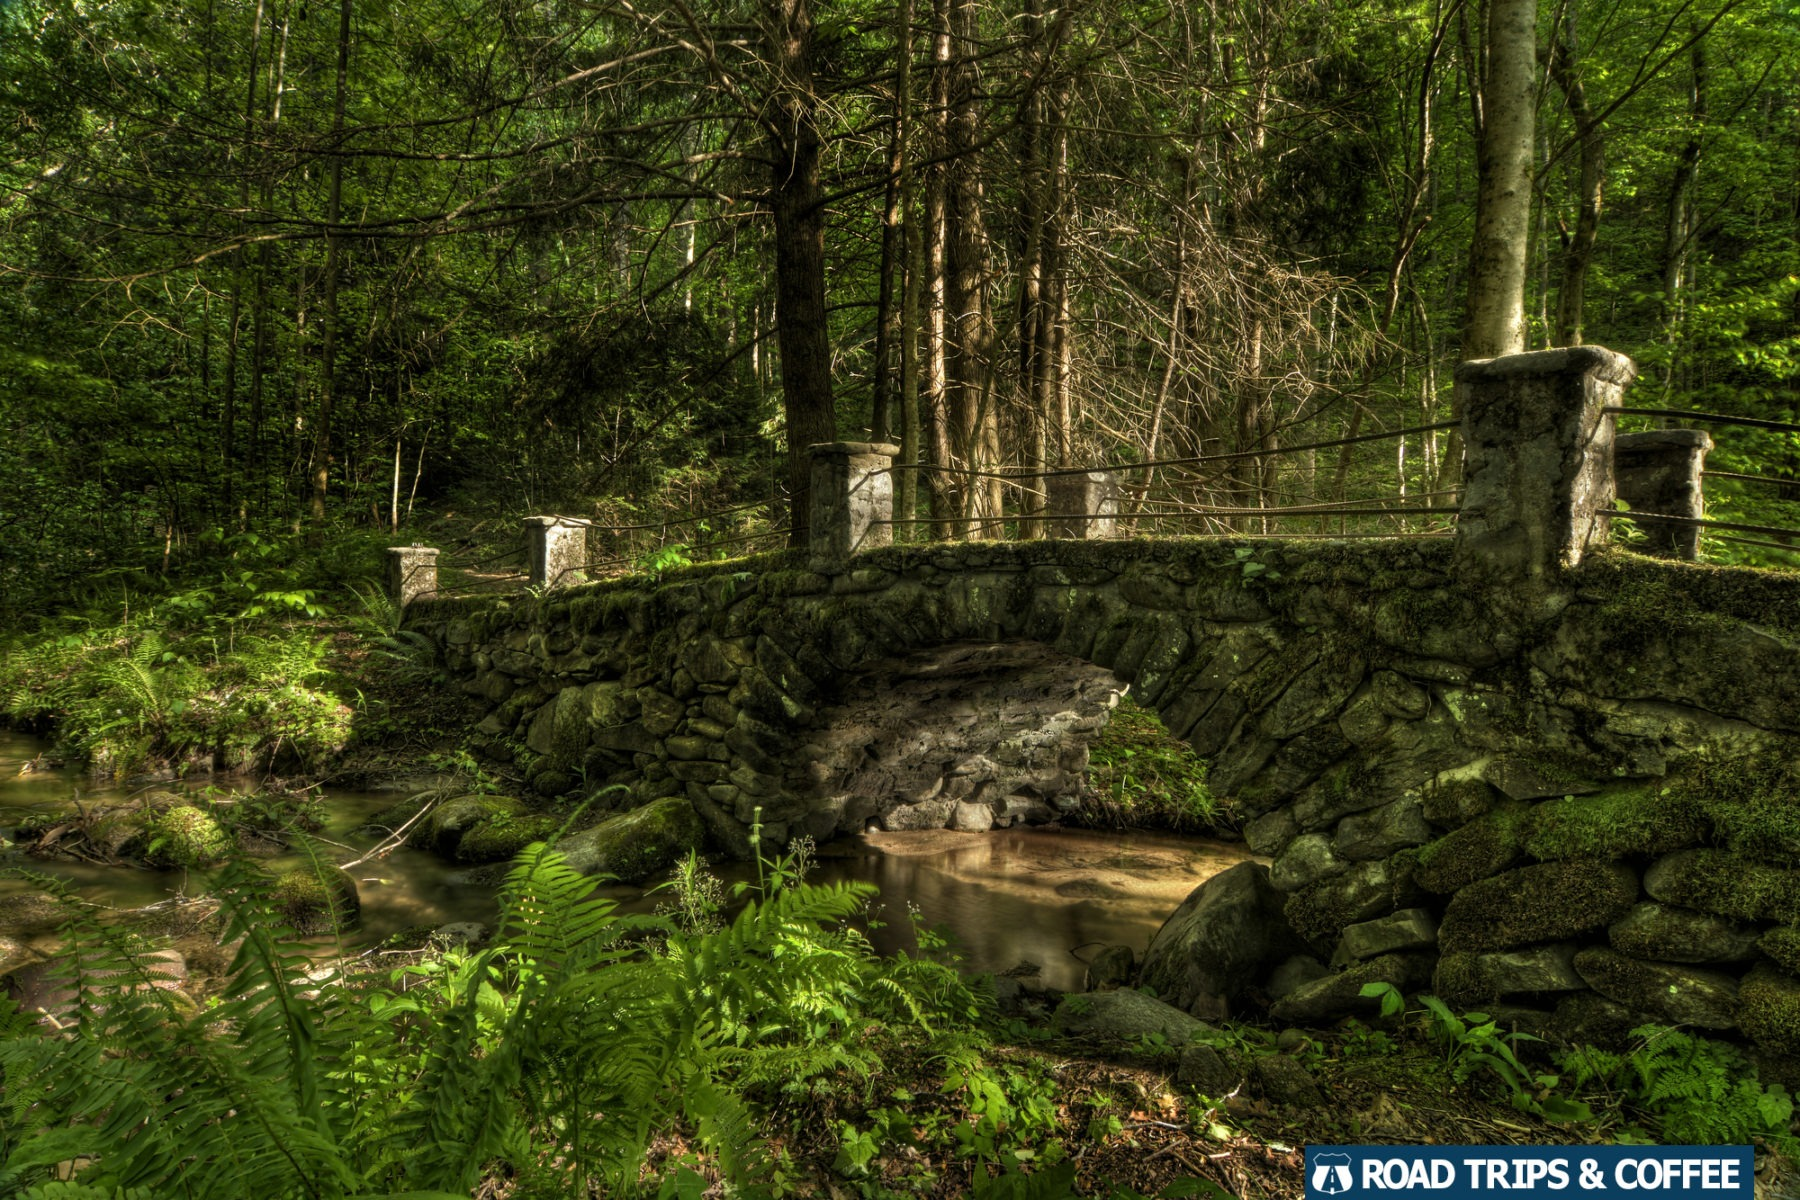 A hidden stone bridge surrounded by a forest crosses a creek near Elkmont in the Great Smoky Mountains National Park